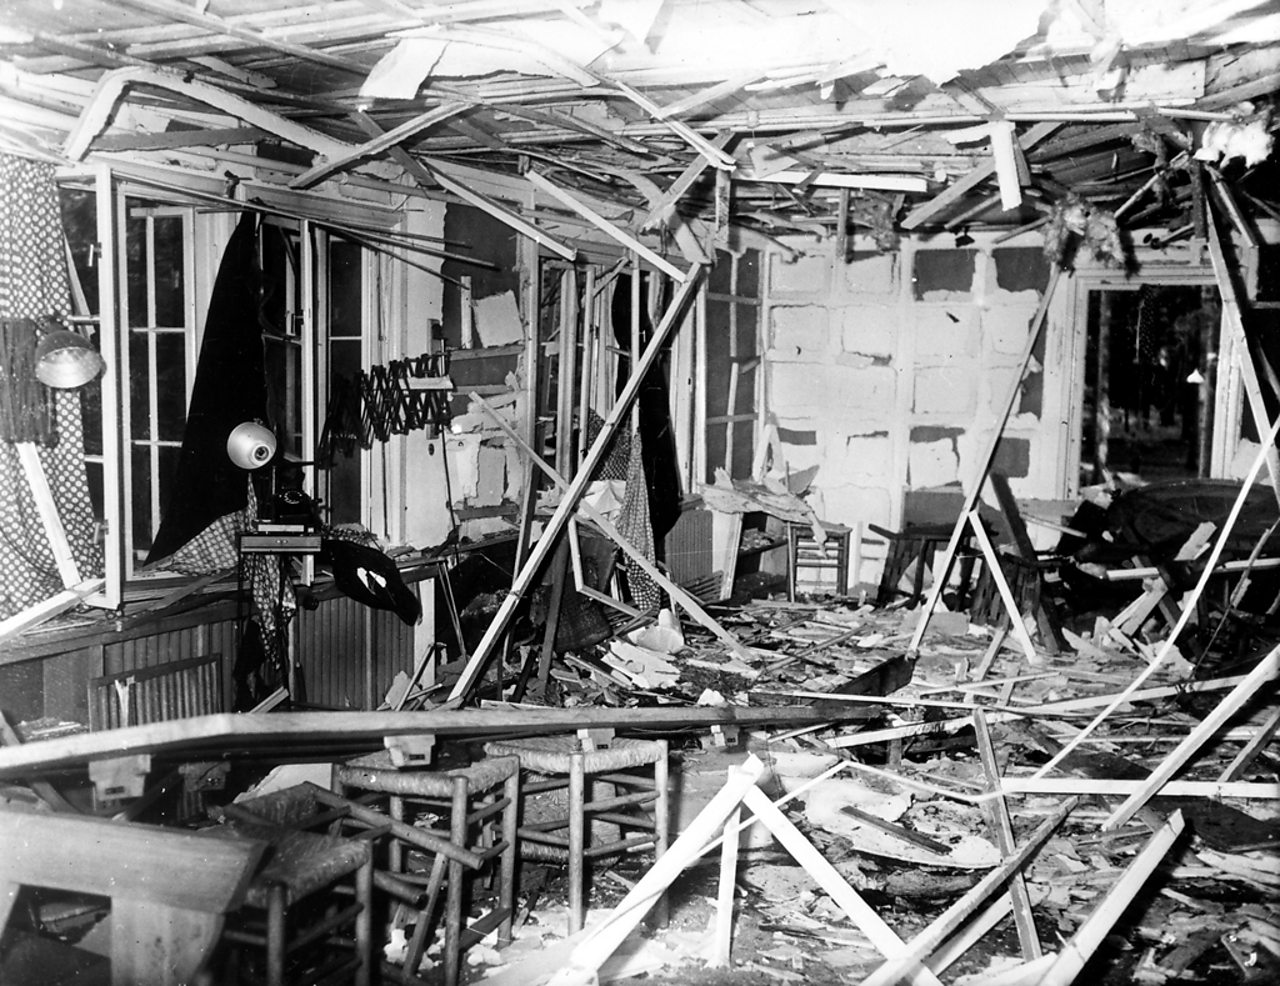 The conference room where Hitler had been sitting was destroyed by Stauffenberg's bomb.